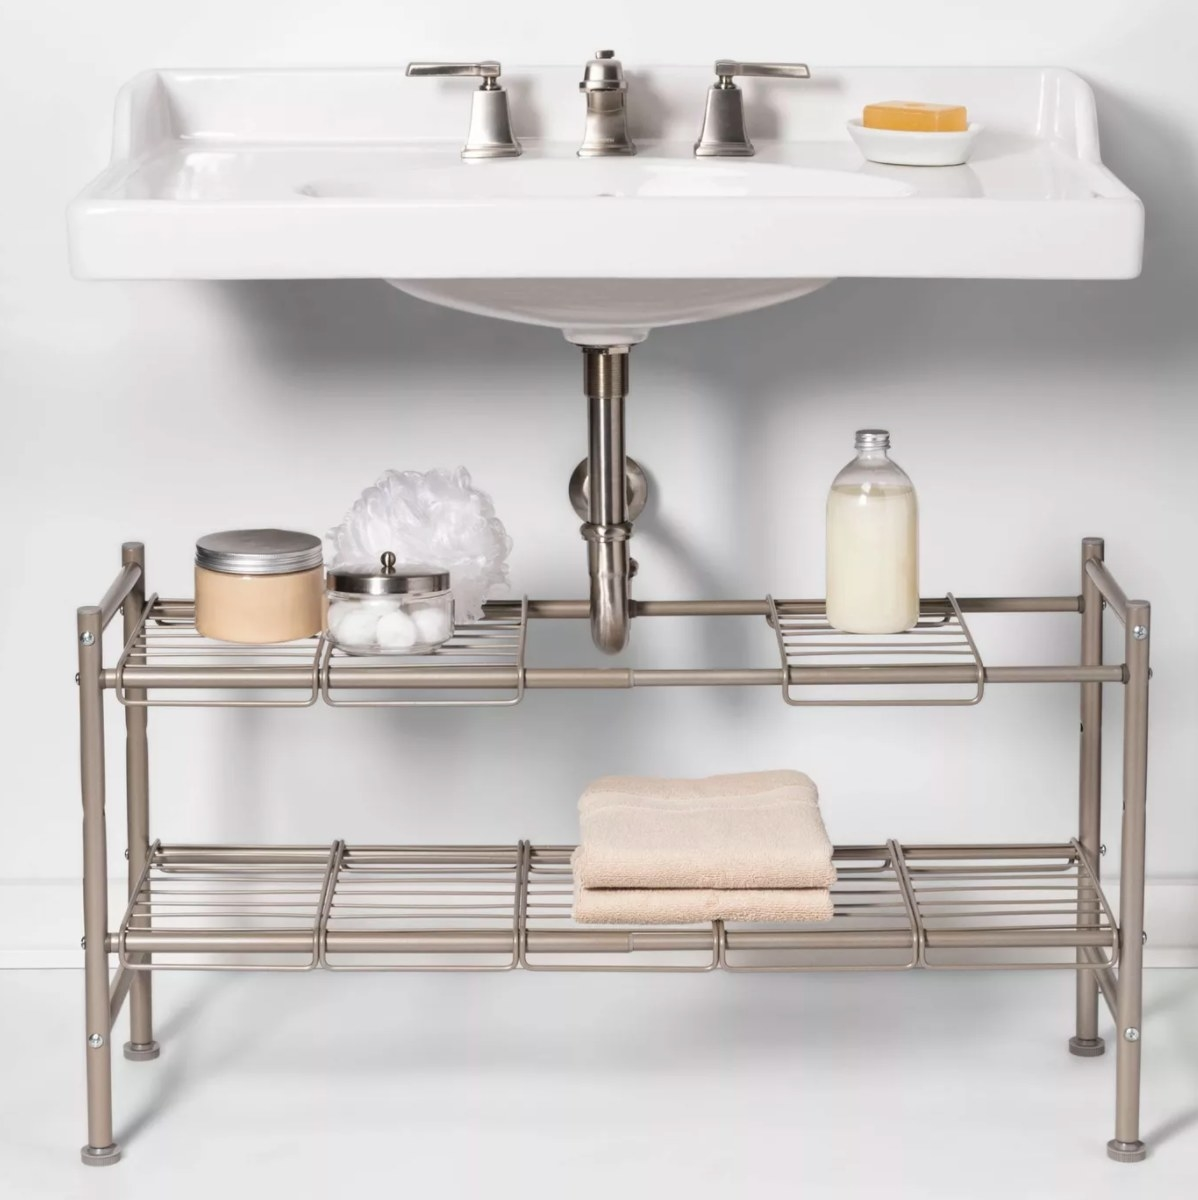 A wire metal tow shelf unit that can be arranged under the pipes of a sink